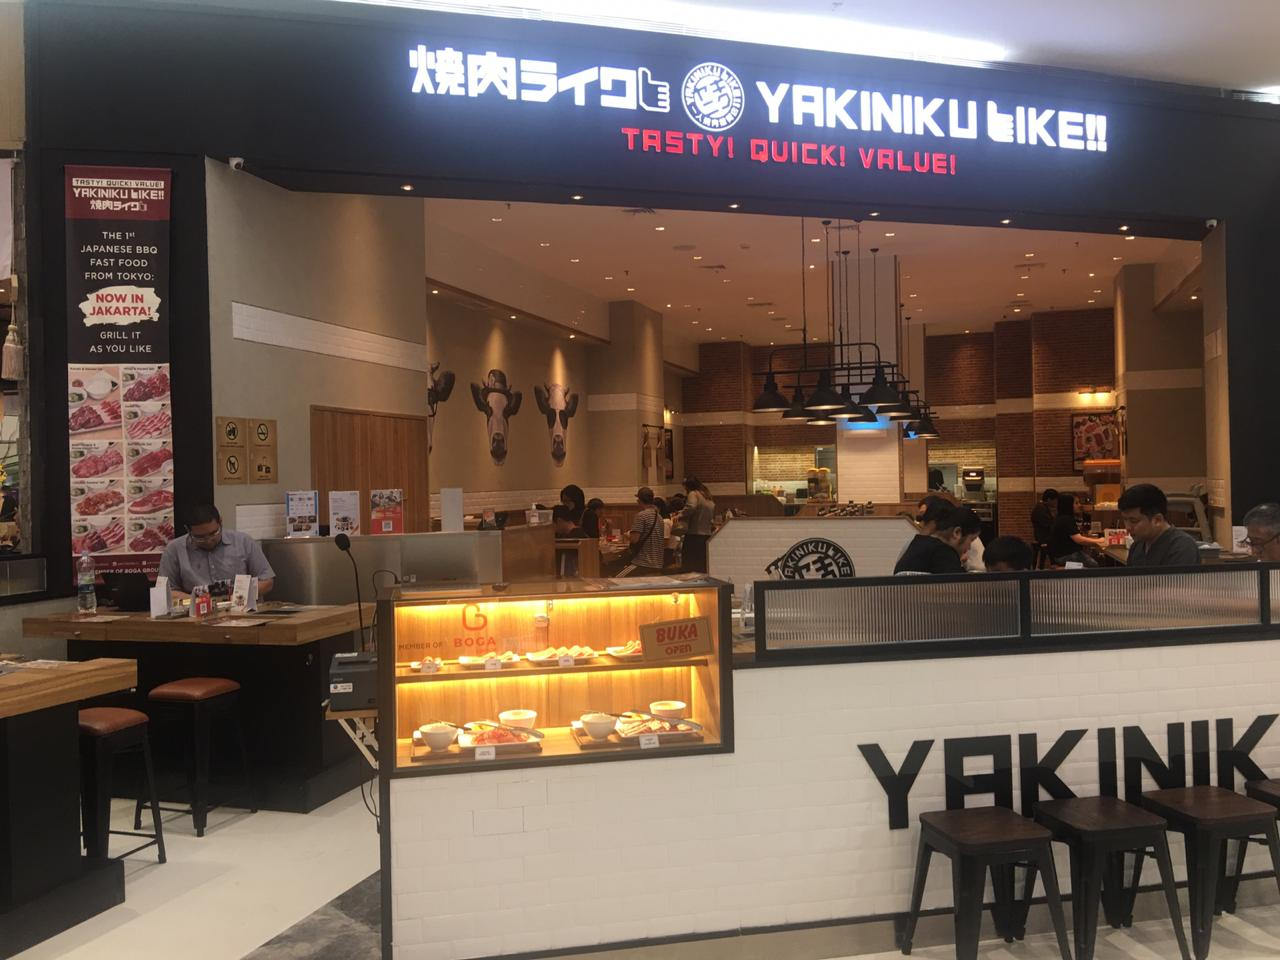 Yakiniku Like shop front in lippo mall puri st. moritz